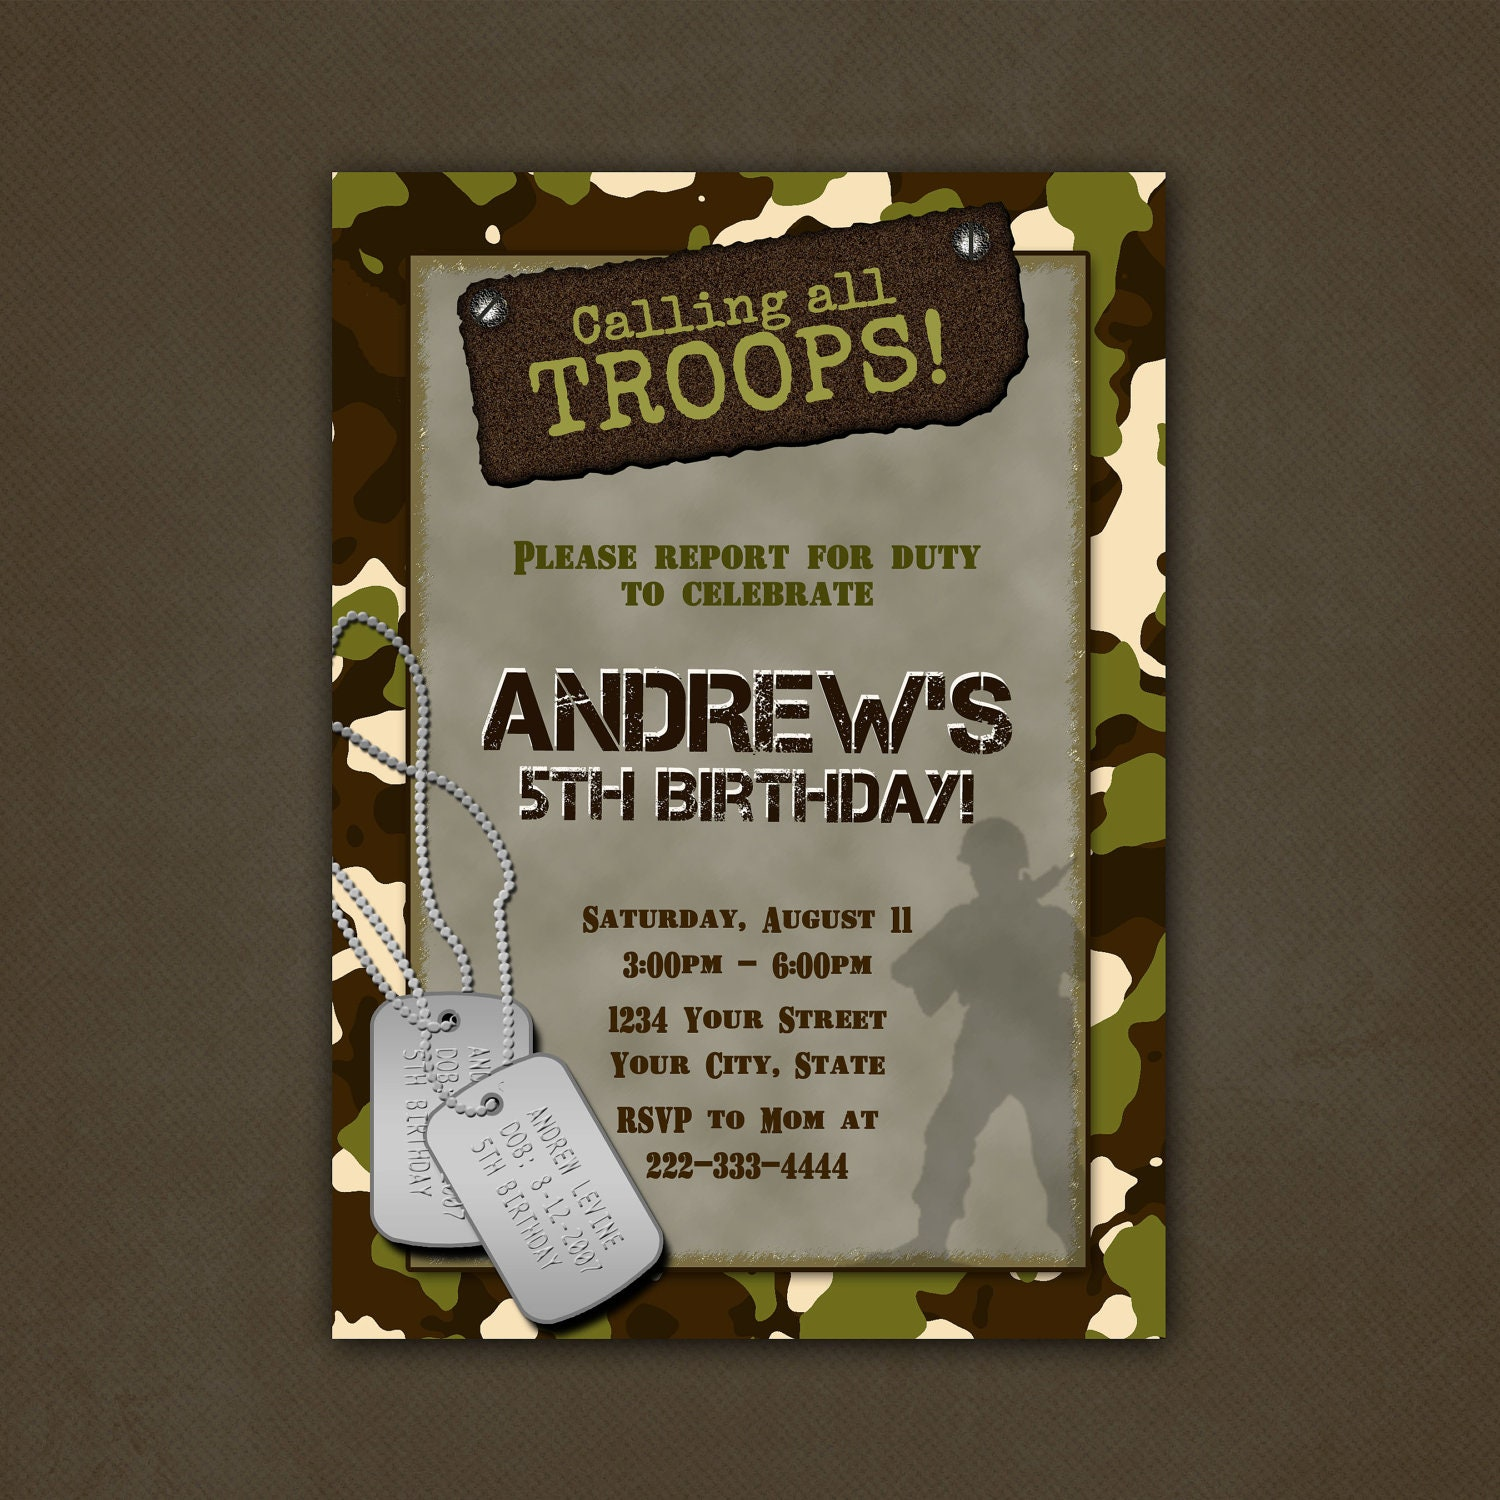 Army Birthday Invitations could be nice ideas for your invitation template